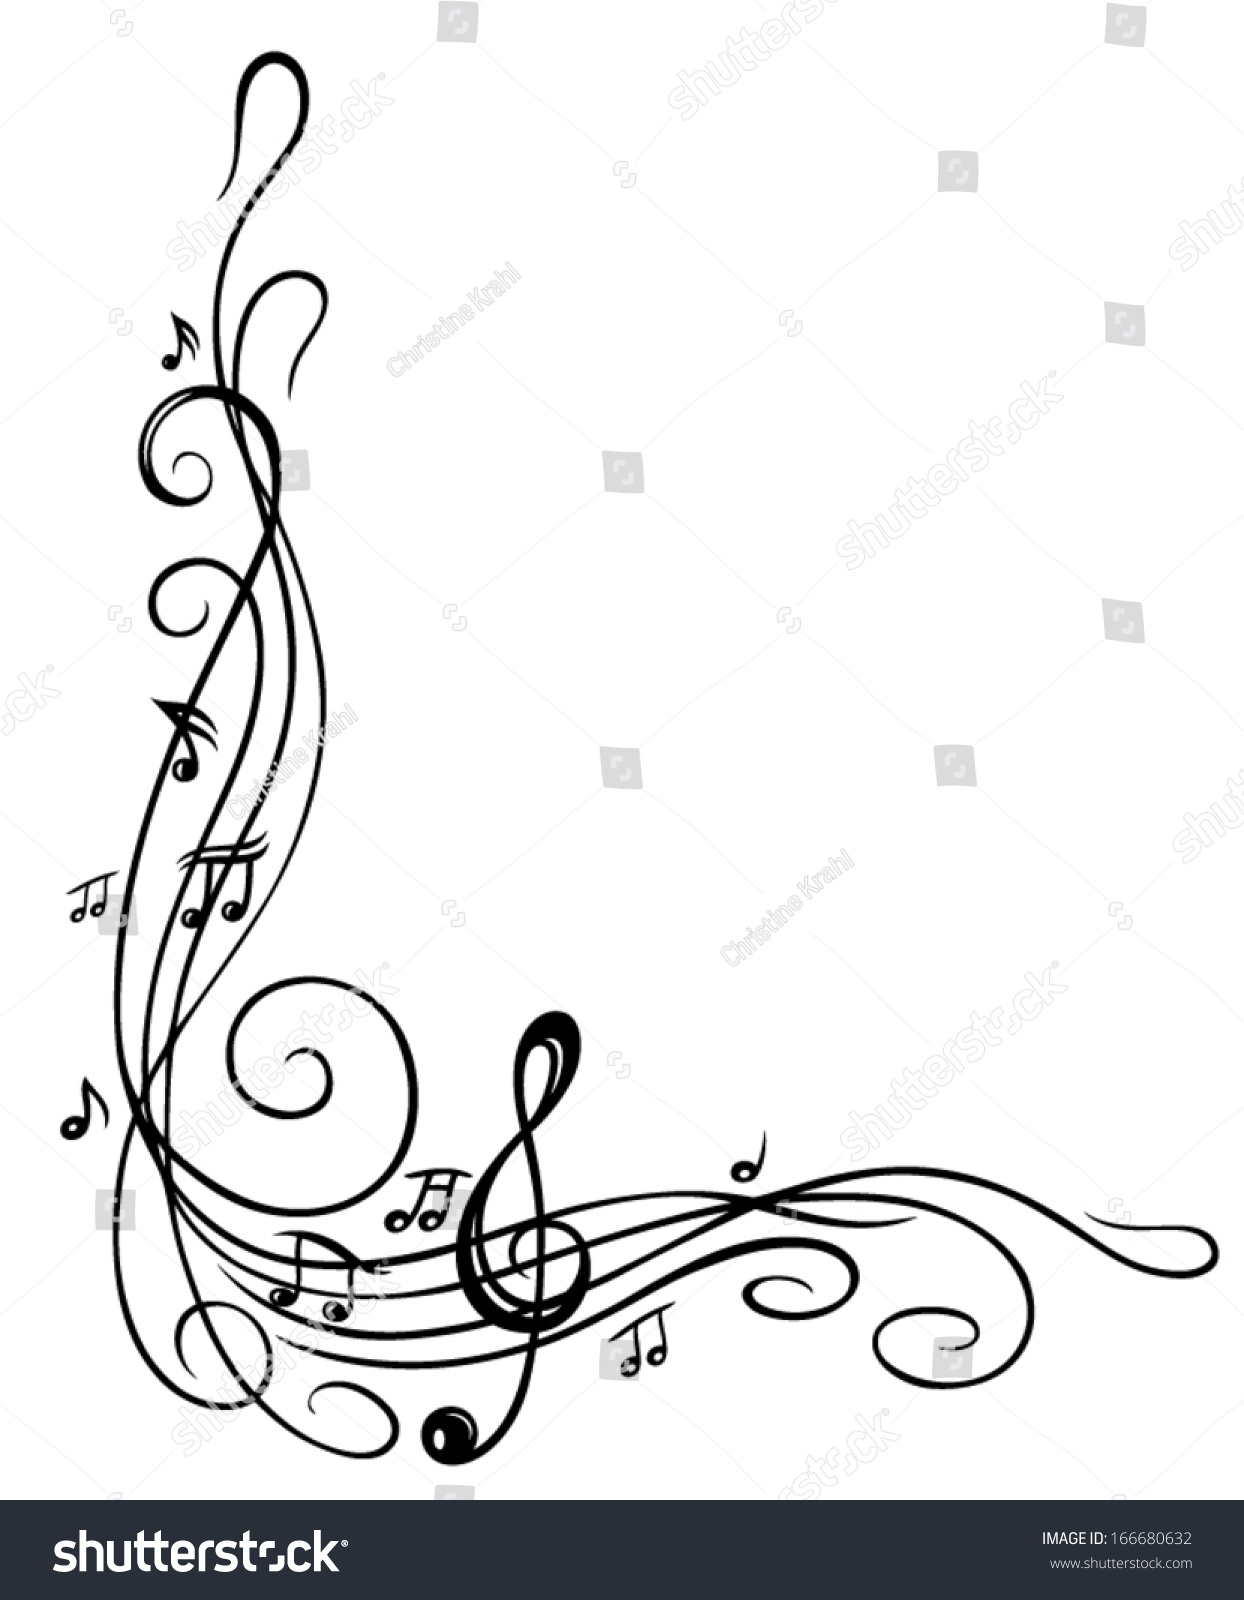 clef with music sheet and music notes border stock vector